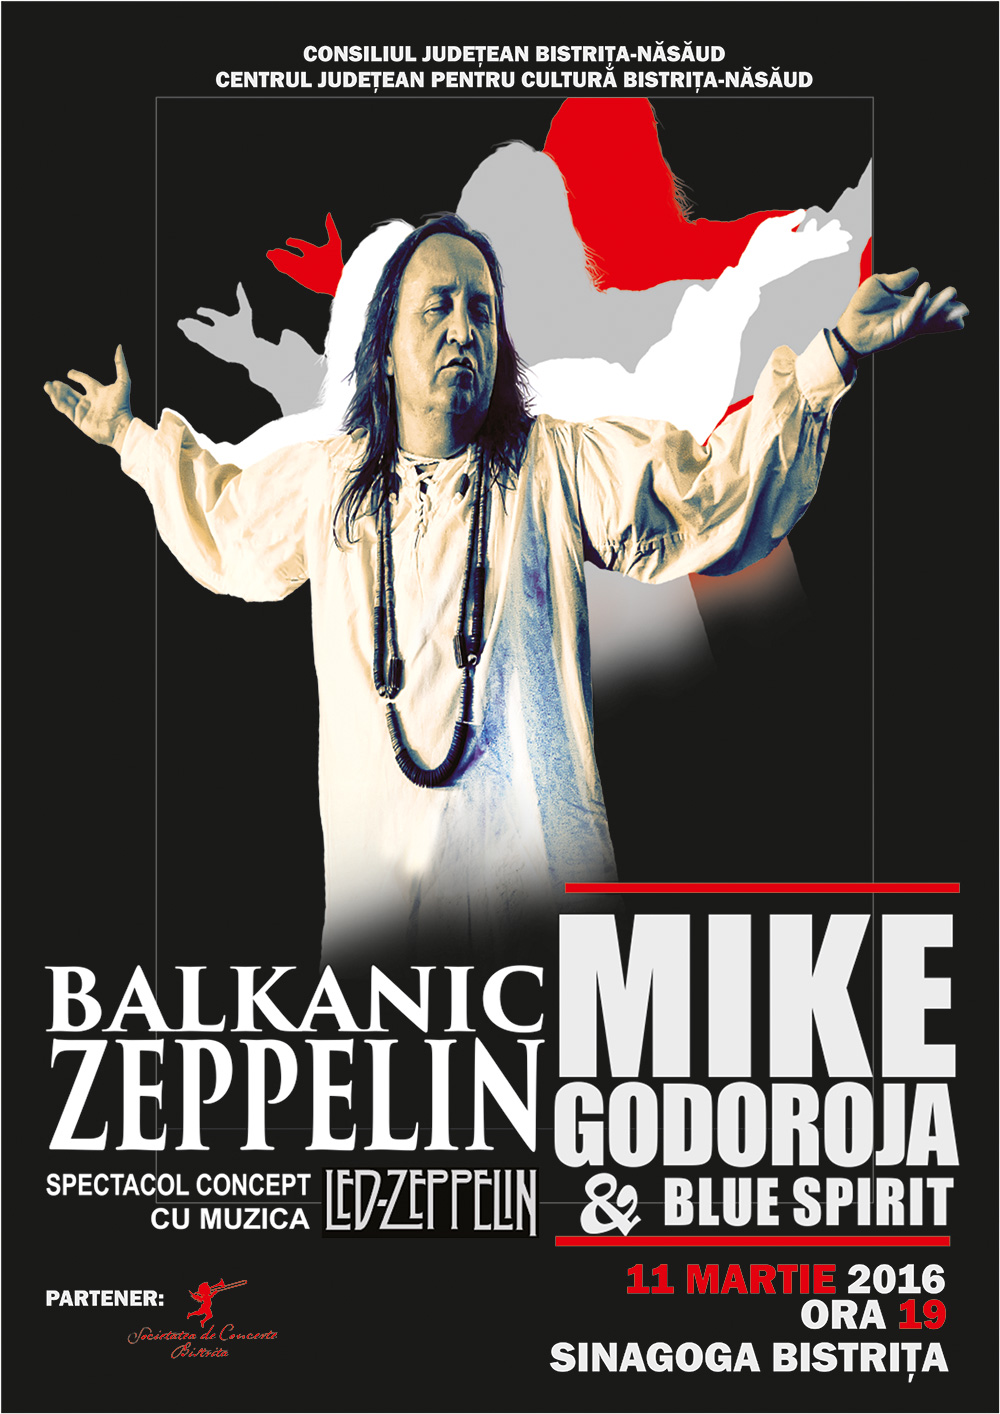 Balkanic-Zeppelin-Mike-Godoroja-Blue-Spirit